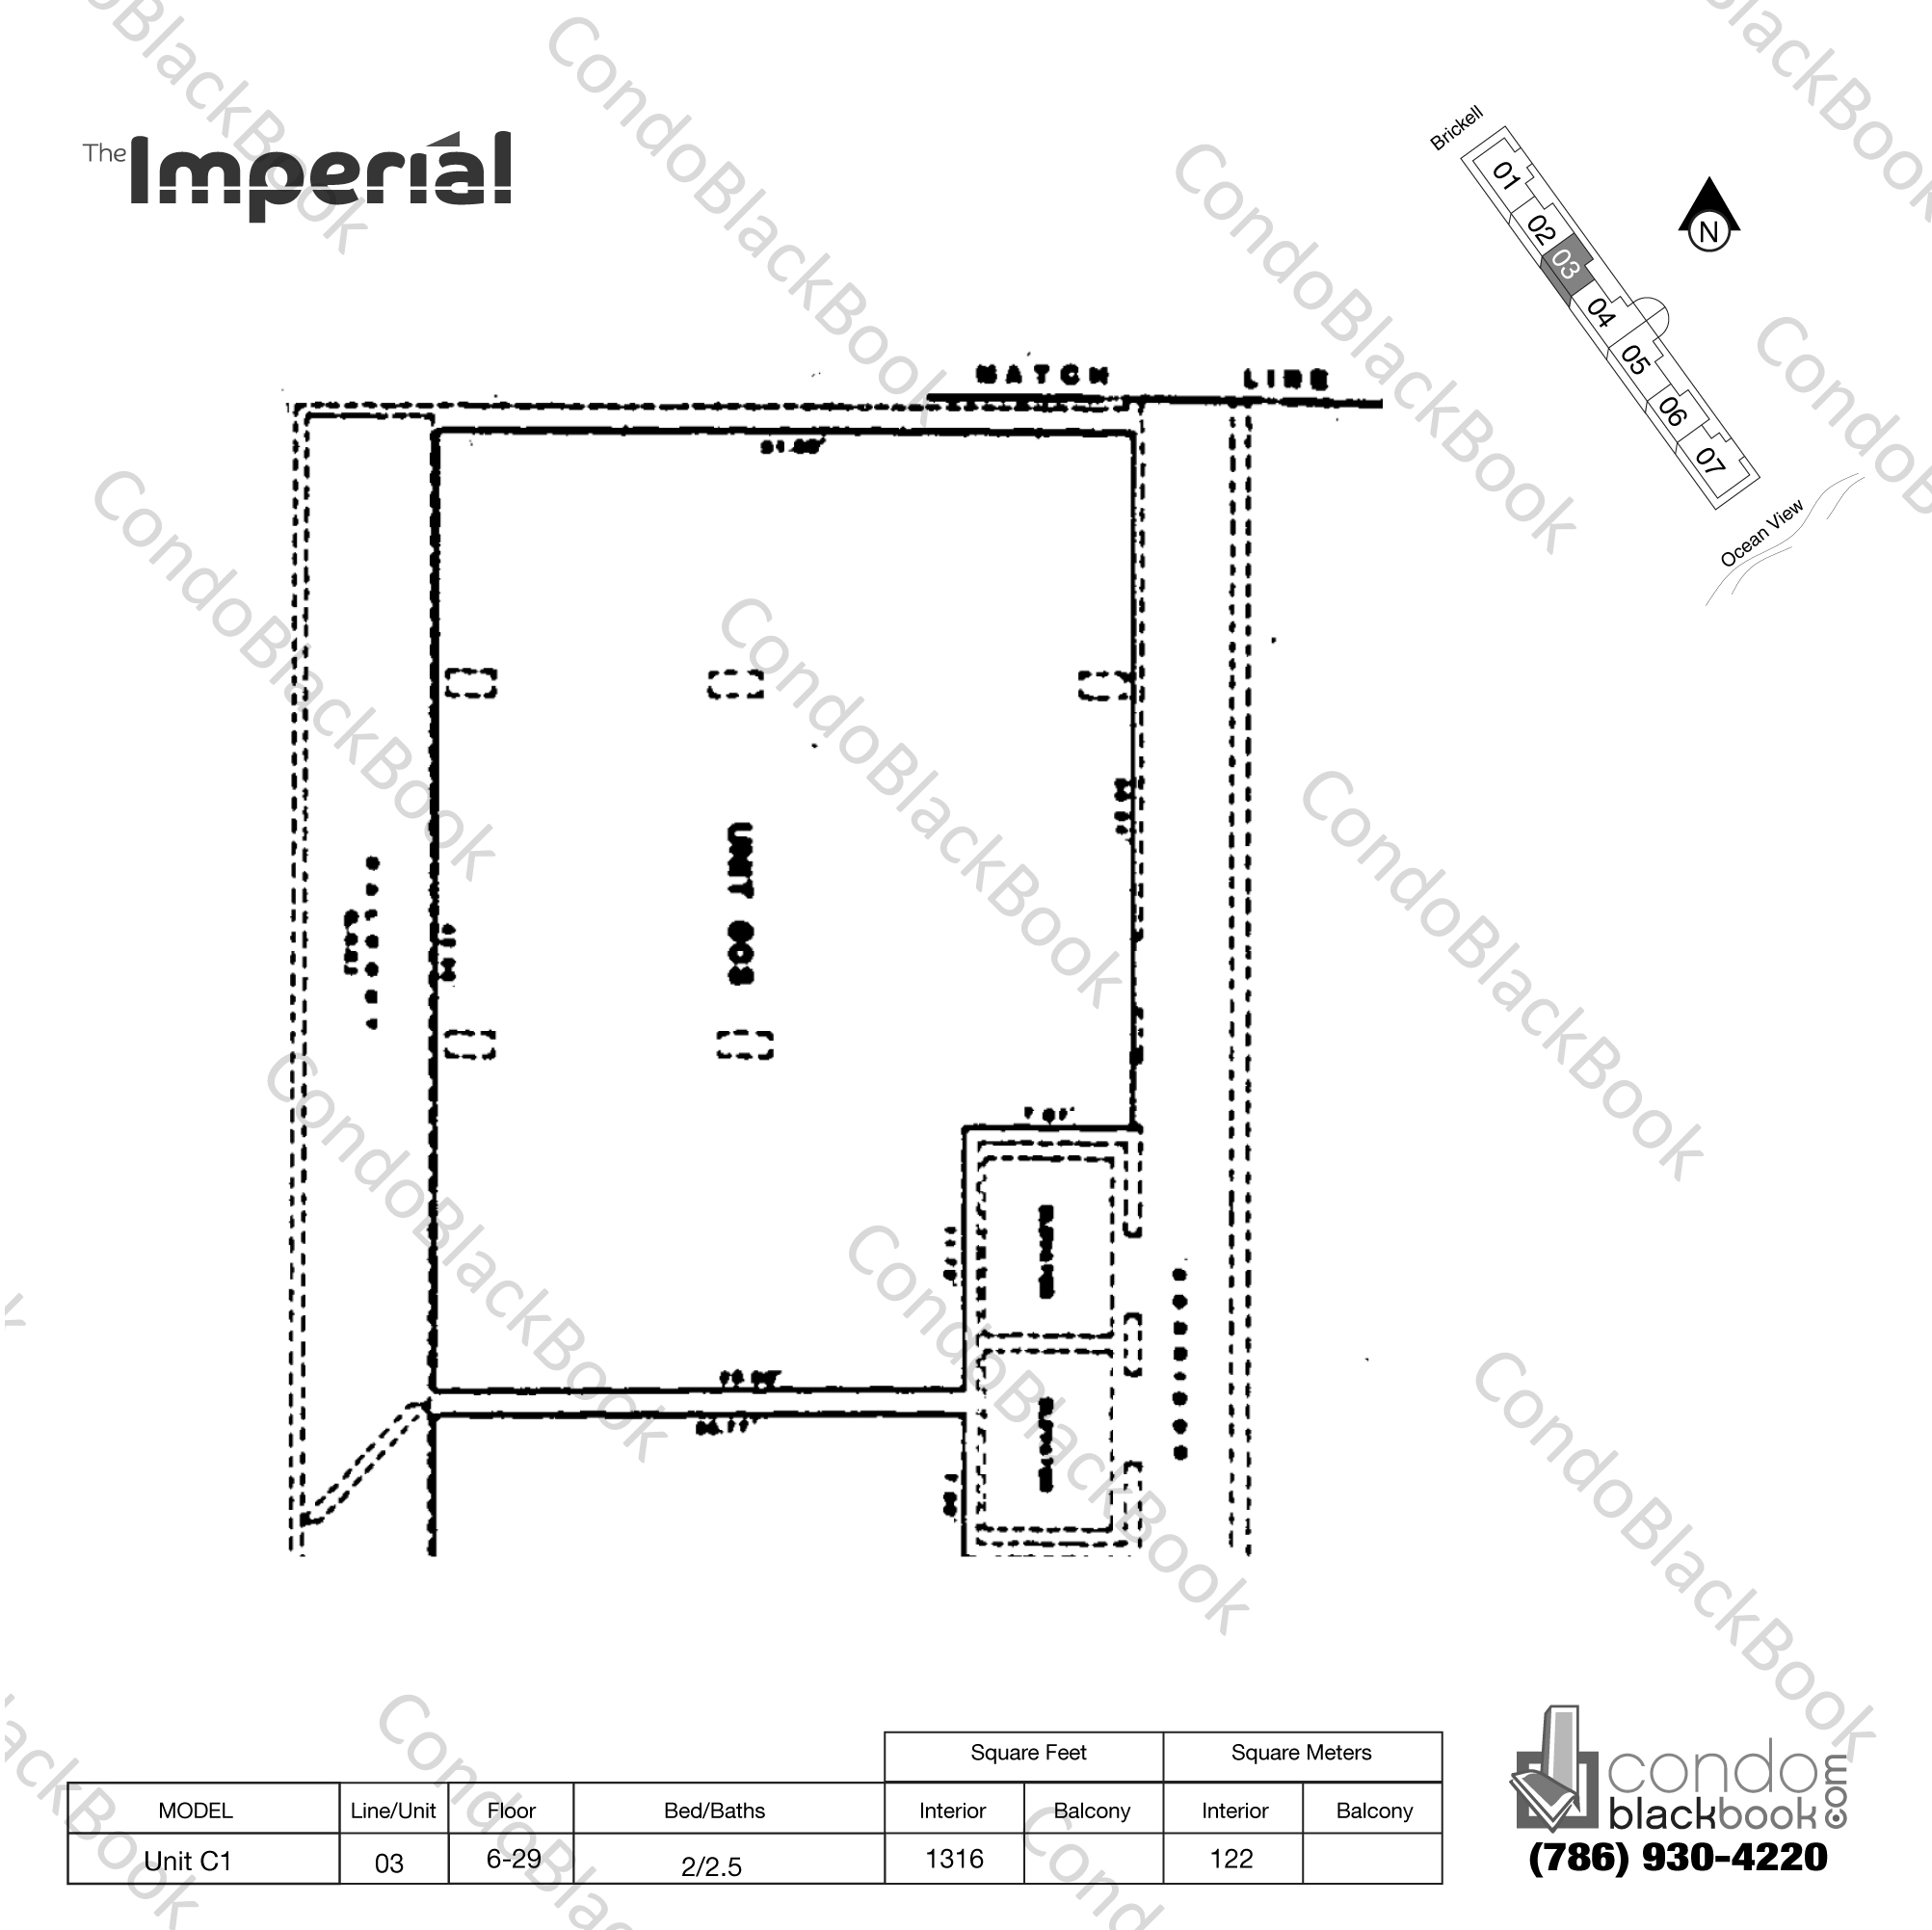 Floor plan for Imperial at Brickell Brickell Miami, model Unit C1, line 03, 2/2.5 bedrooms, 1316 sq ft